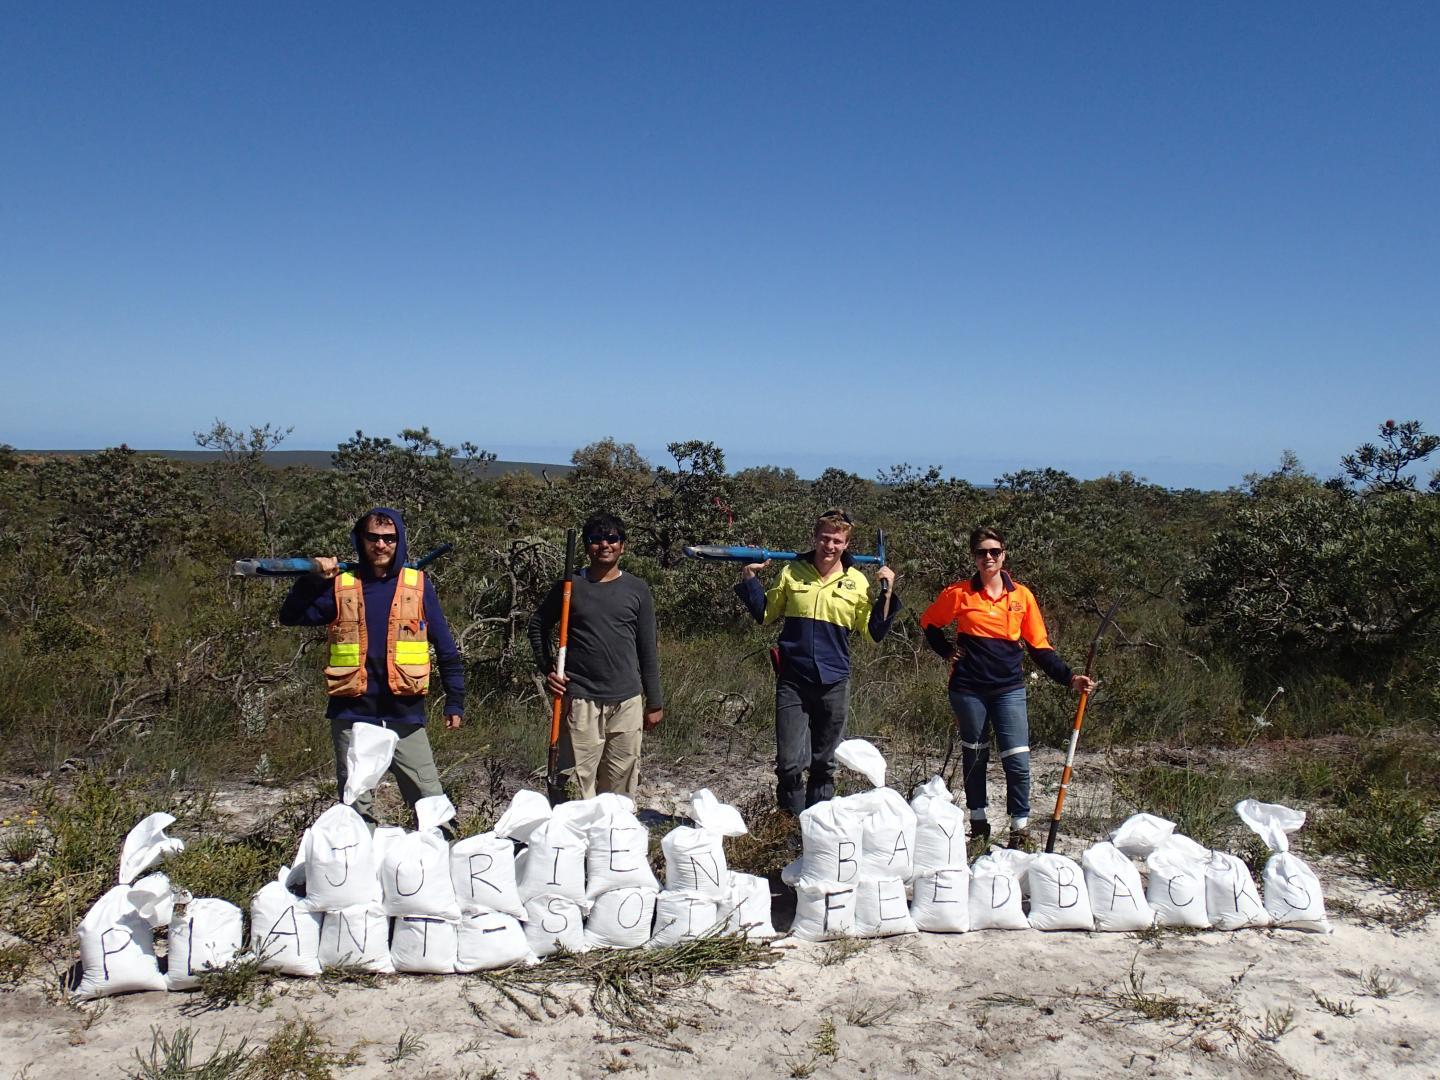 The end of a long day of soil sampling in the Jurien Bay shrublands. CREDIT Francois Teste